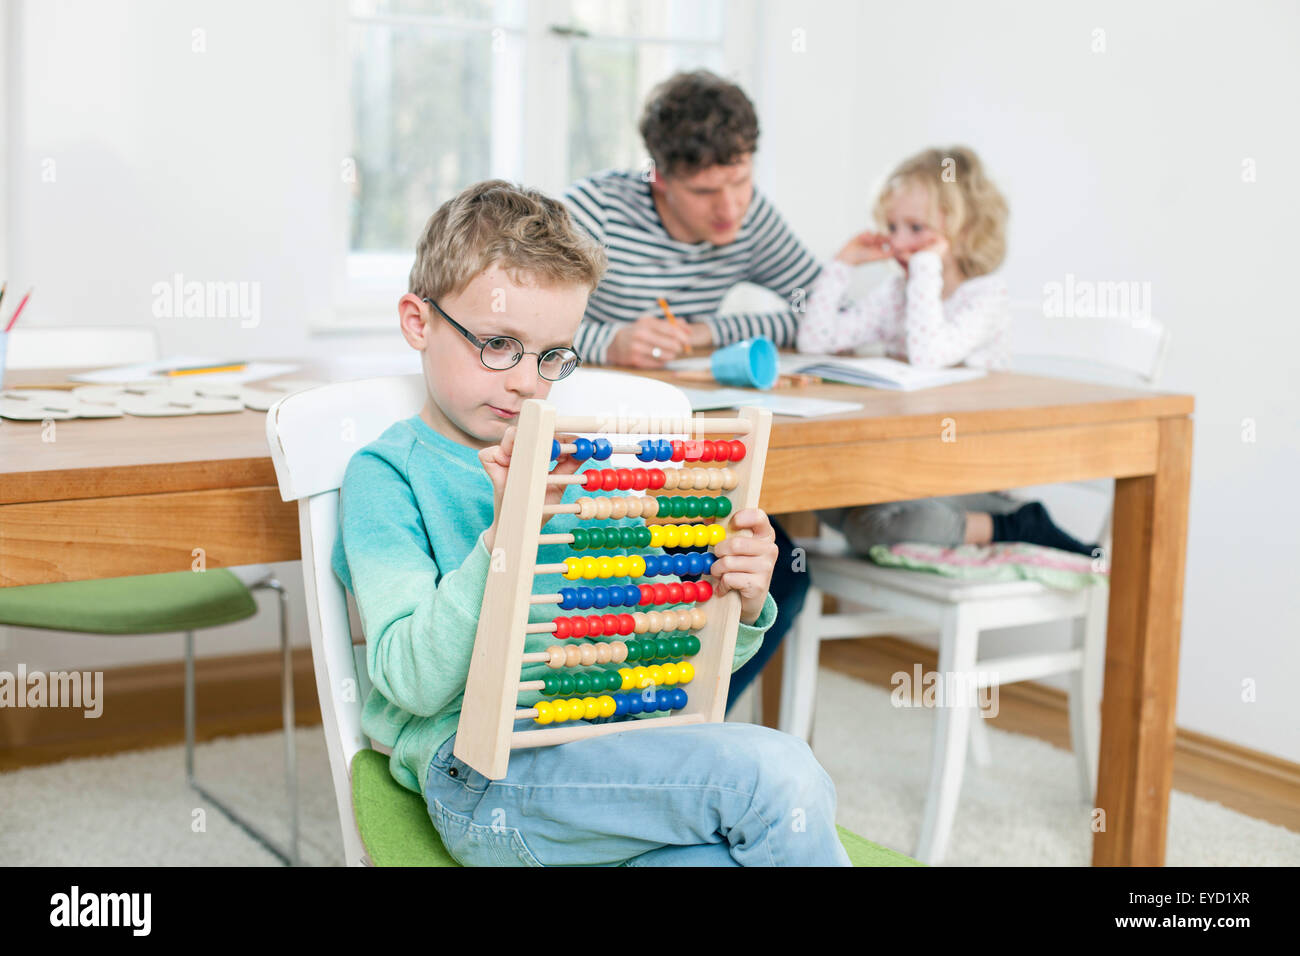 Father and children calculating with abacus - Stock Image